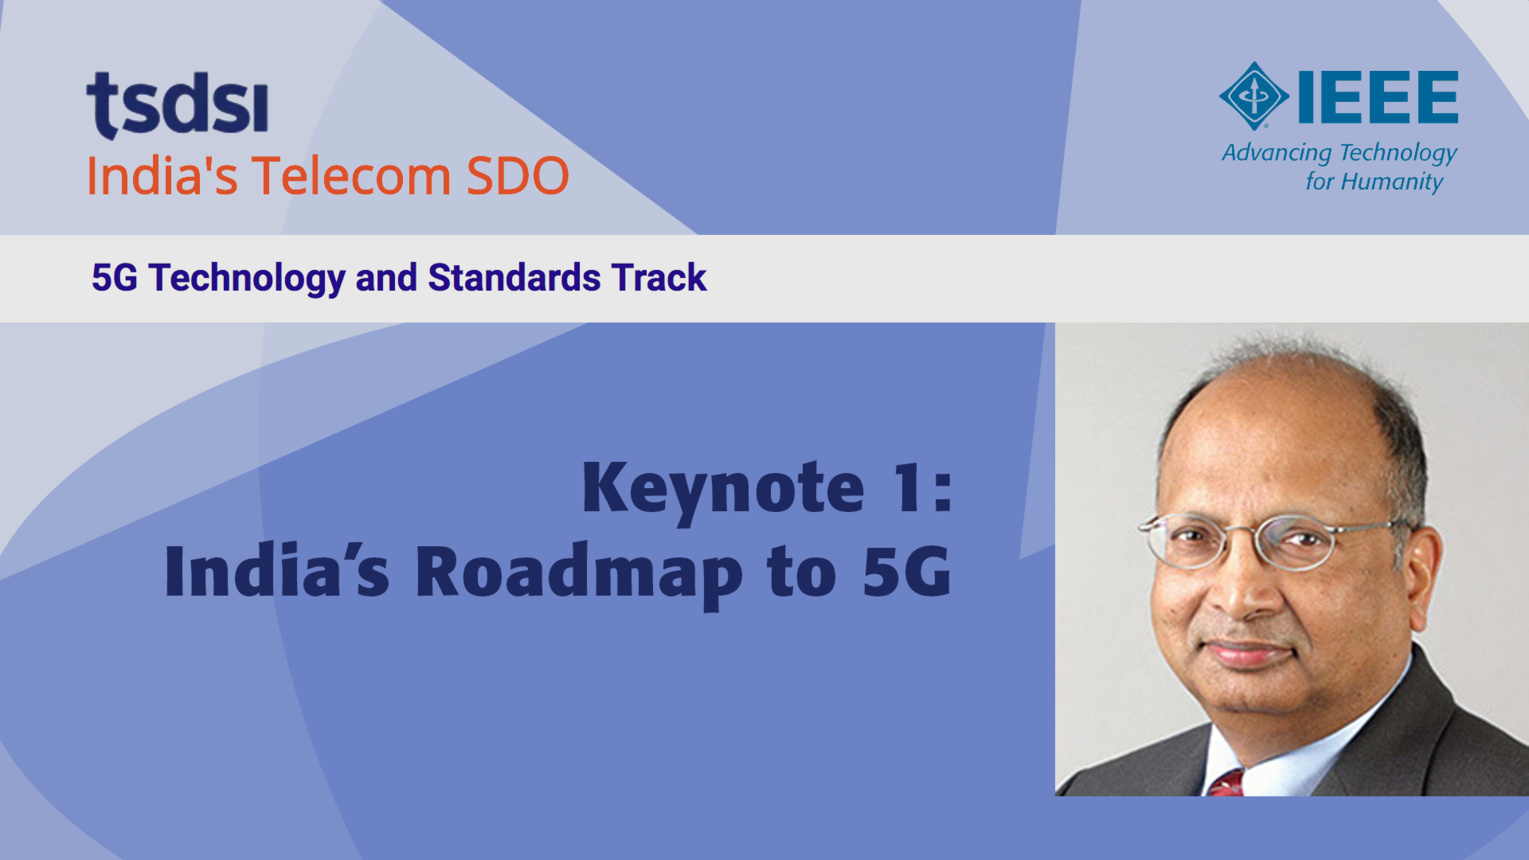 Keynote 1: India's Roadmap to 5G - Arogyaswami J. Paulraj - India Mobile Congress, 2018